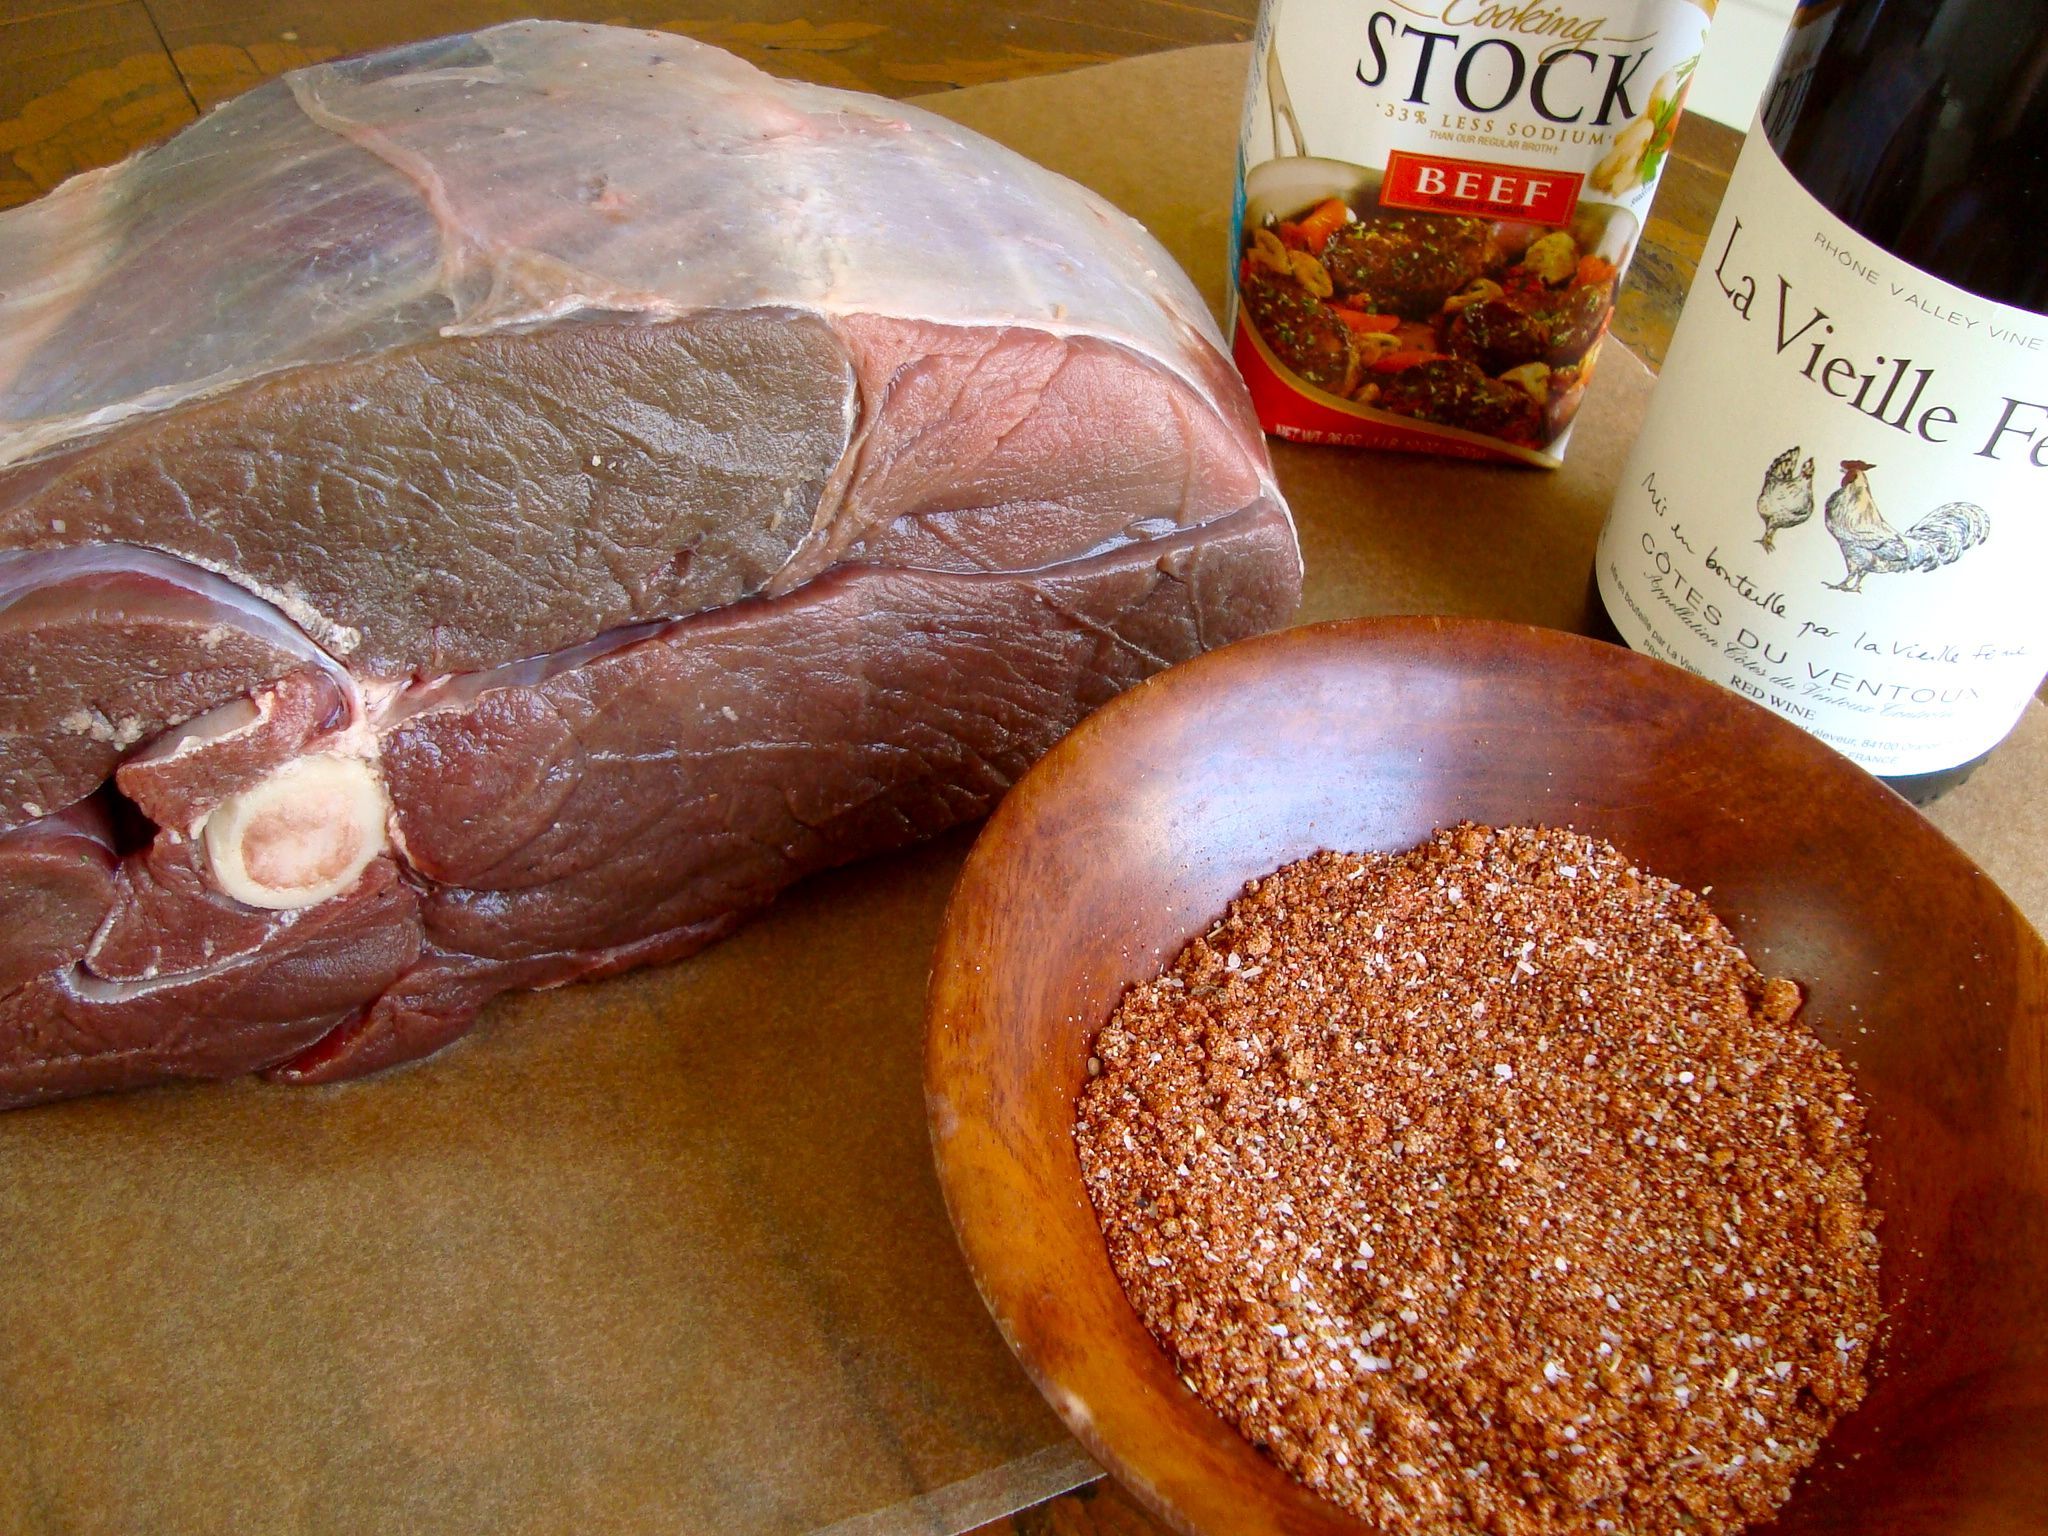 Top steak tips in crock pot recipes and other great tasting recipes with a healthy slant from landlaw.ml Top steak tips in crock pot recipes and other great tasting recipes with a healthy slant from landlaw.ml Slow Cooker/Crock Pot Swiss Steak.